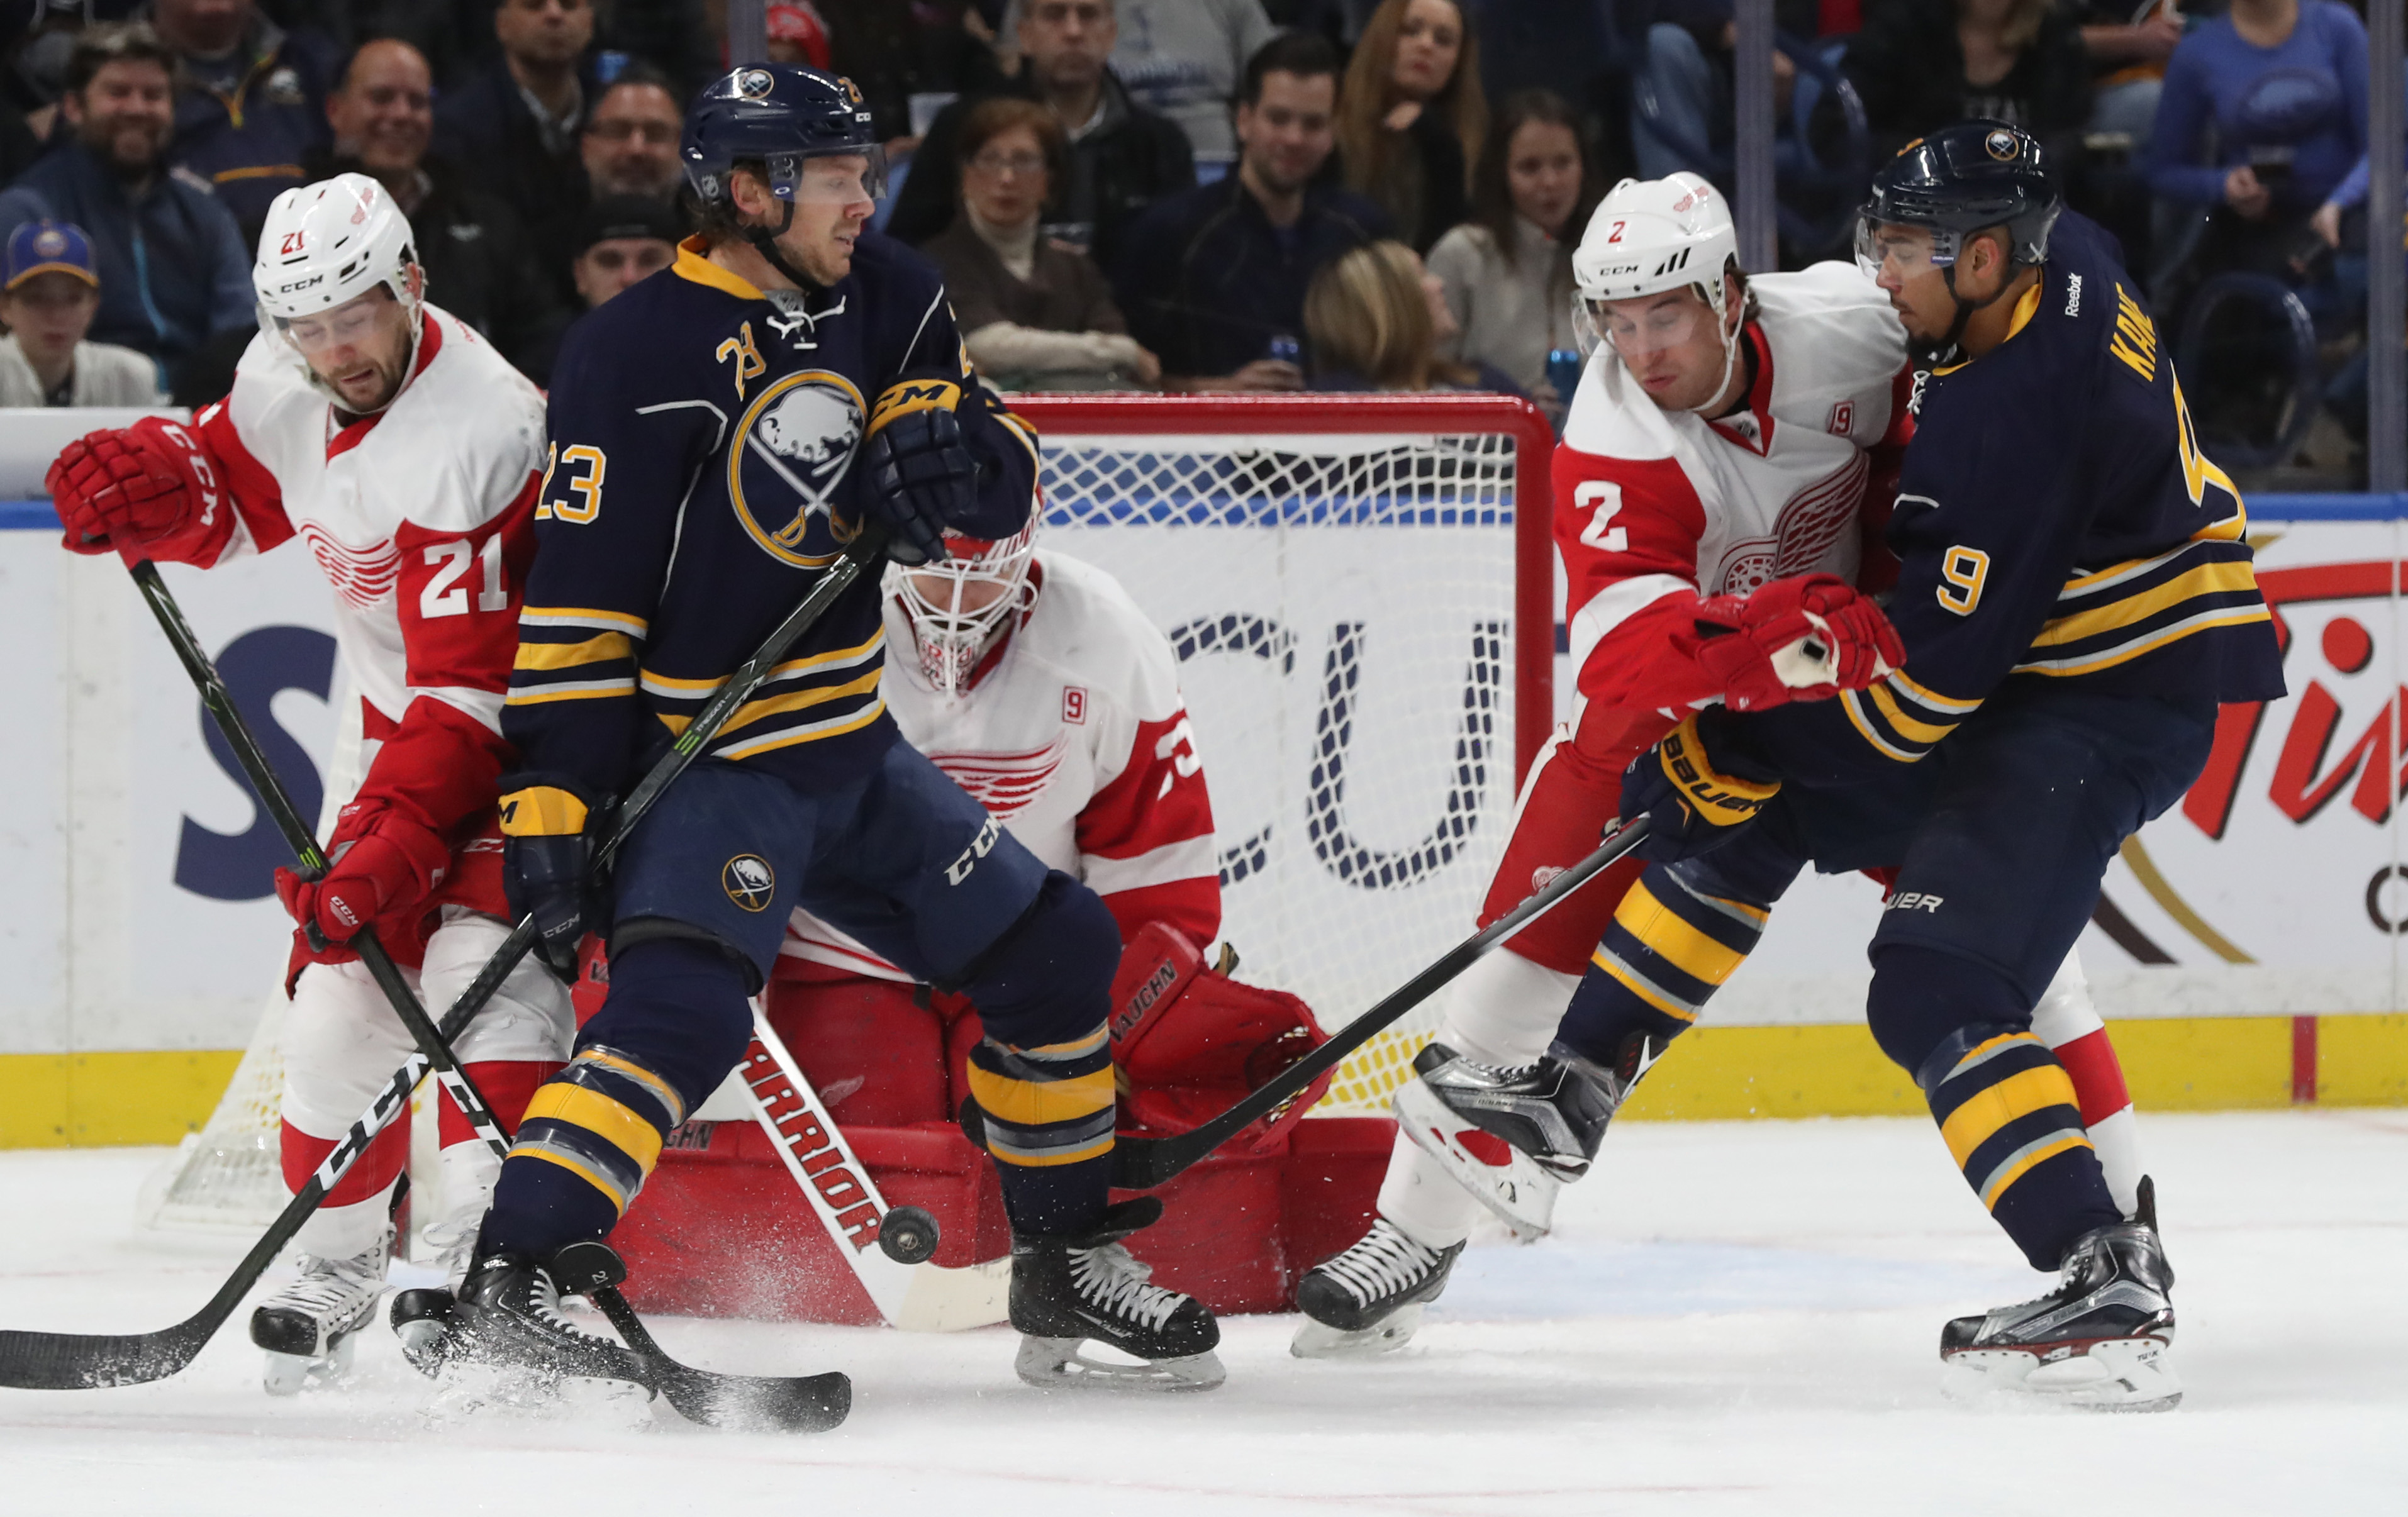 The Detroit Red Wings earned a 2-1 shootout win over the Sabres.  (James P. McCoy/Buffalo News)